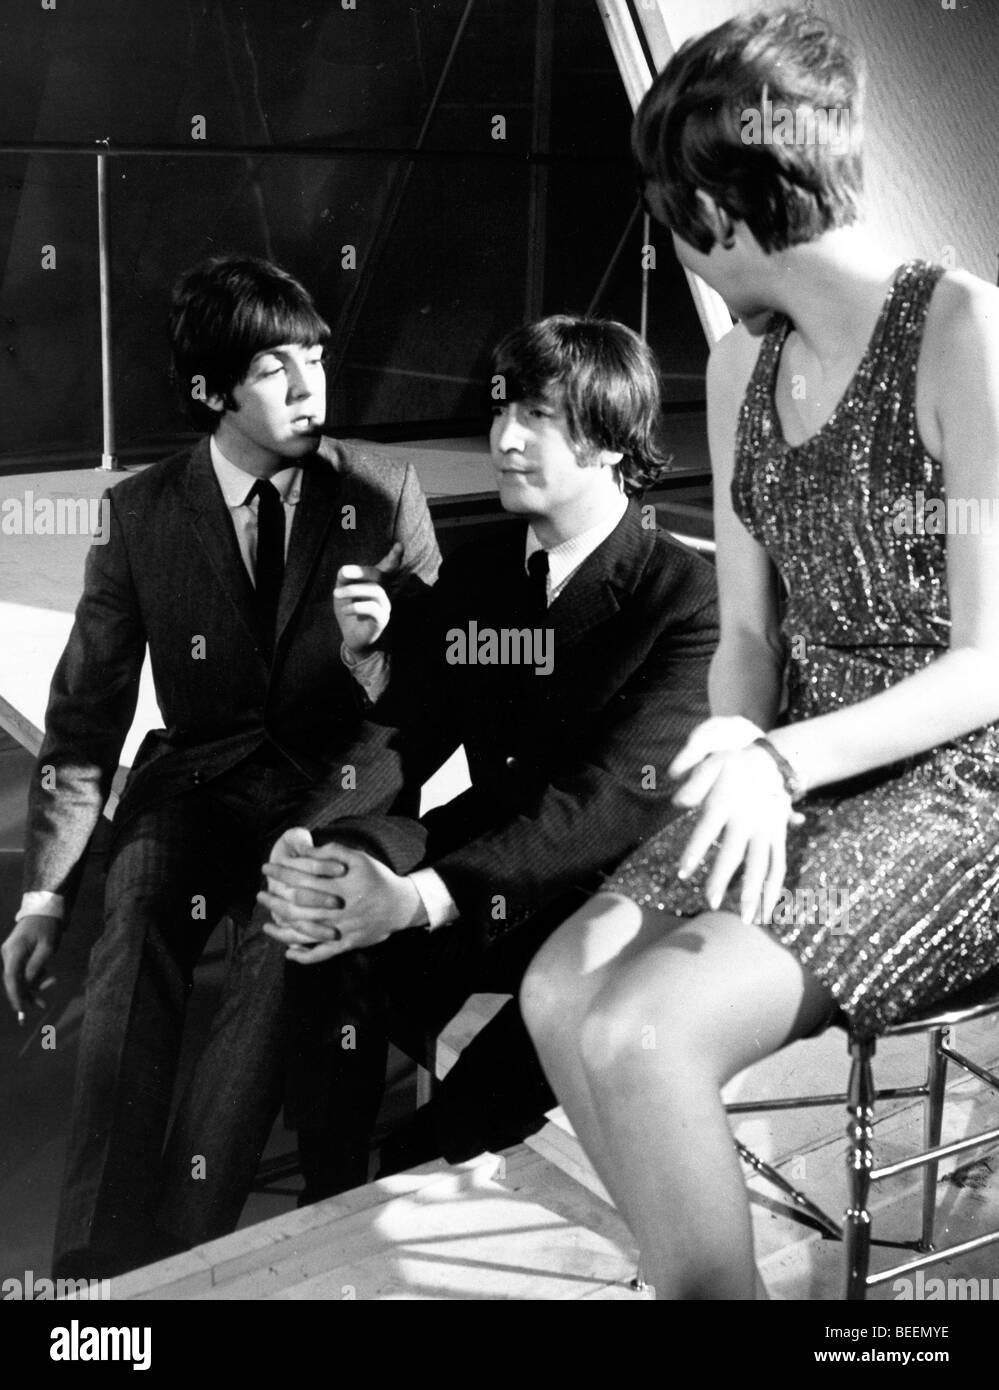 The Beatles with Cilla Black taking a break from filming a TV special Stock Photo